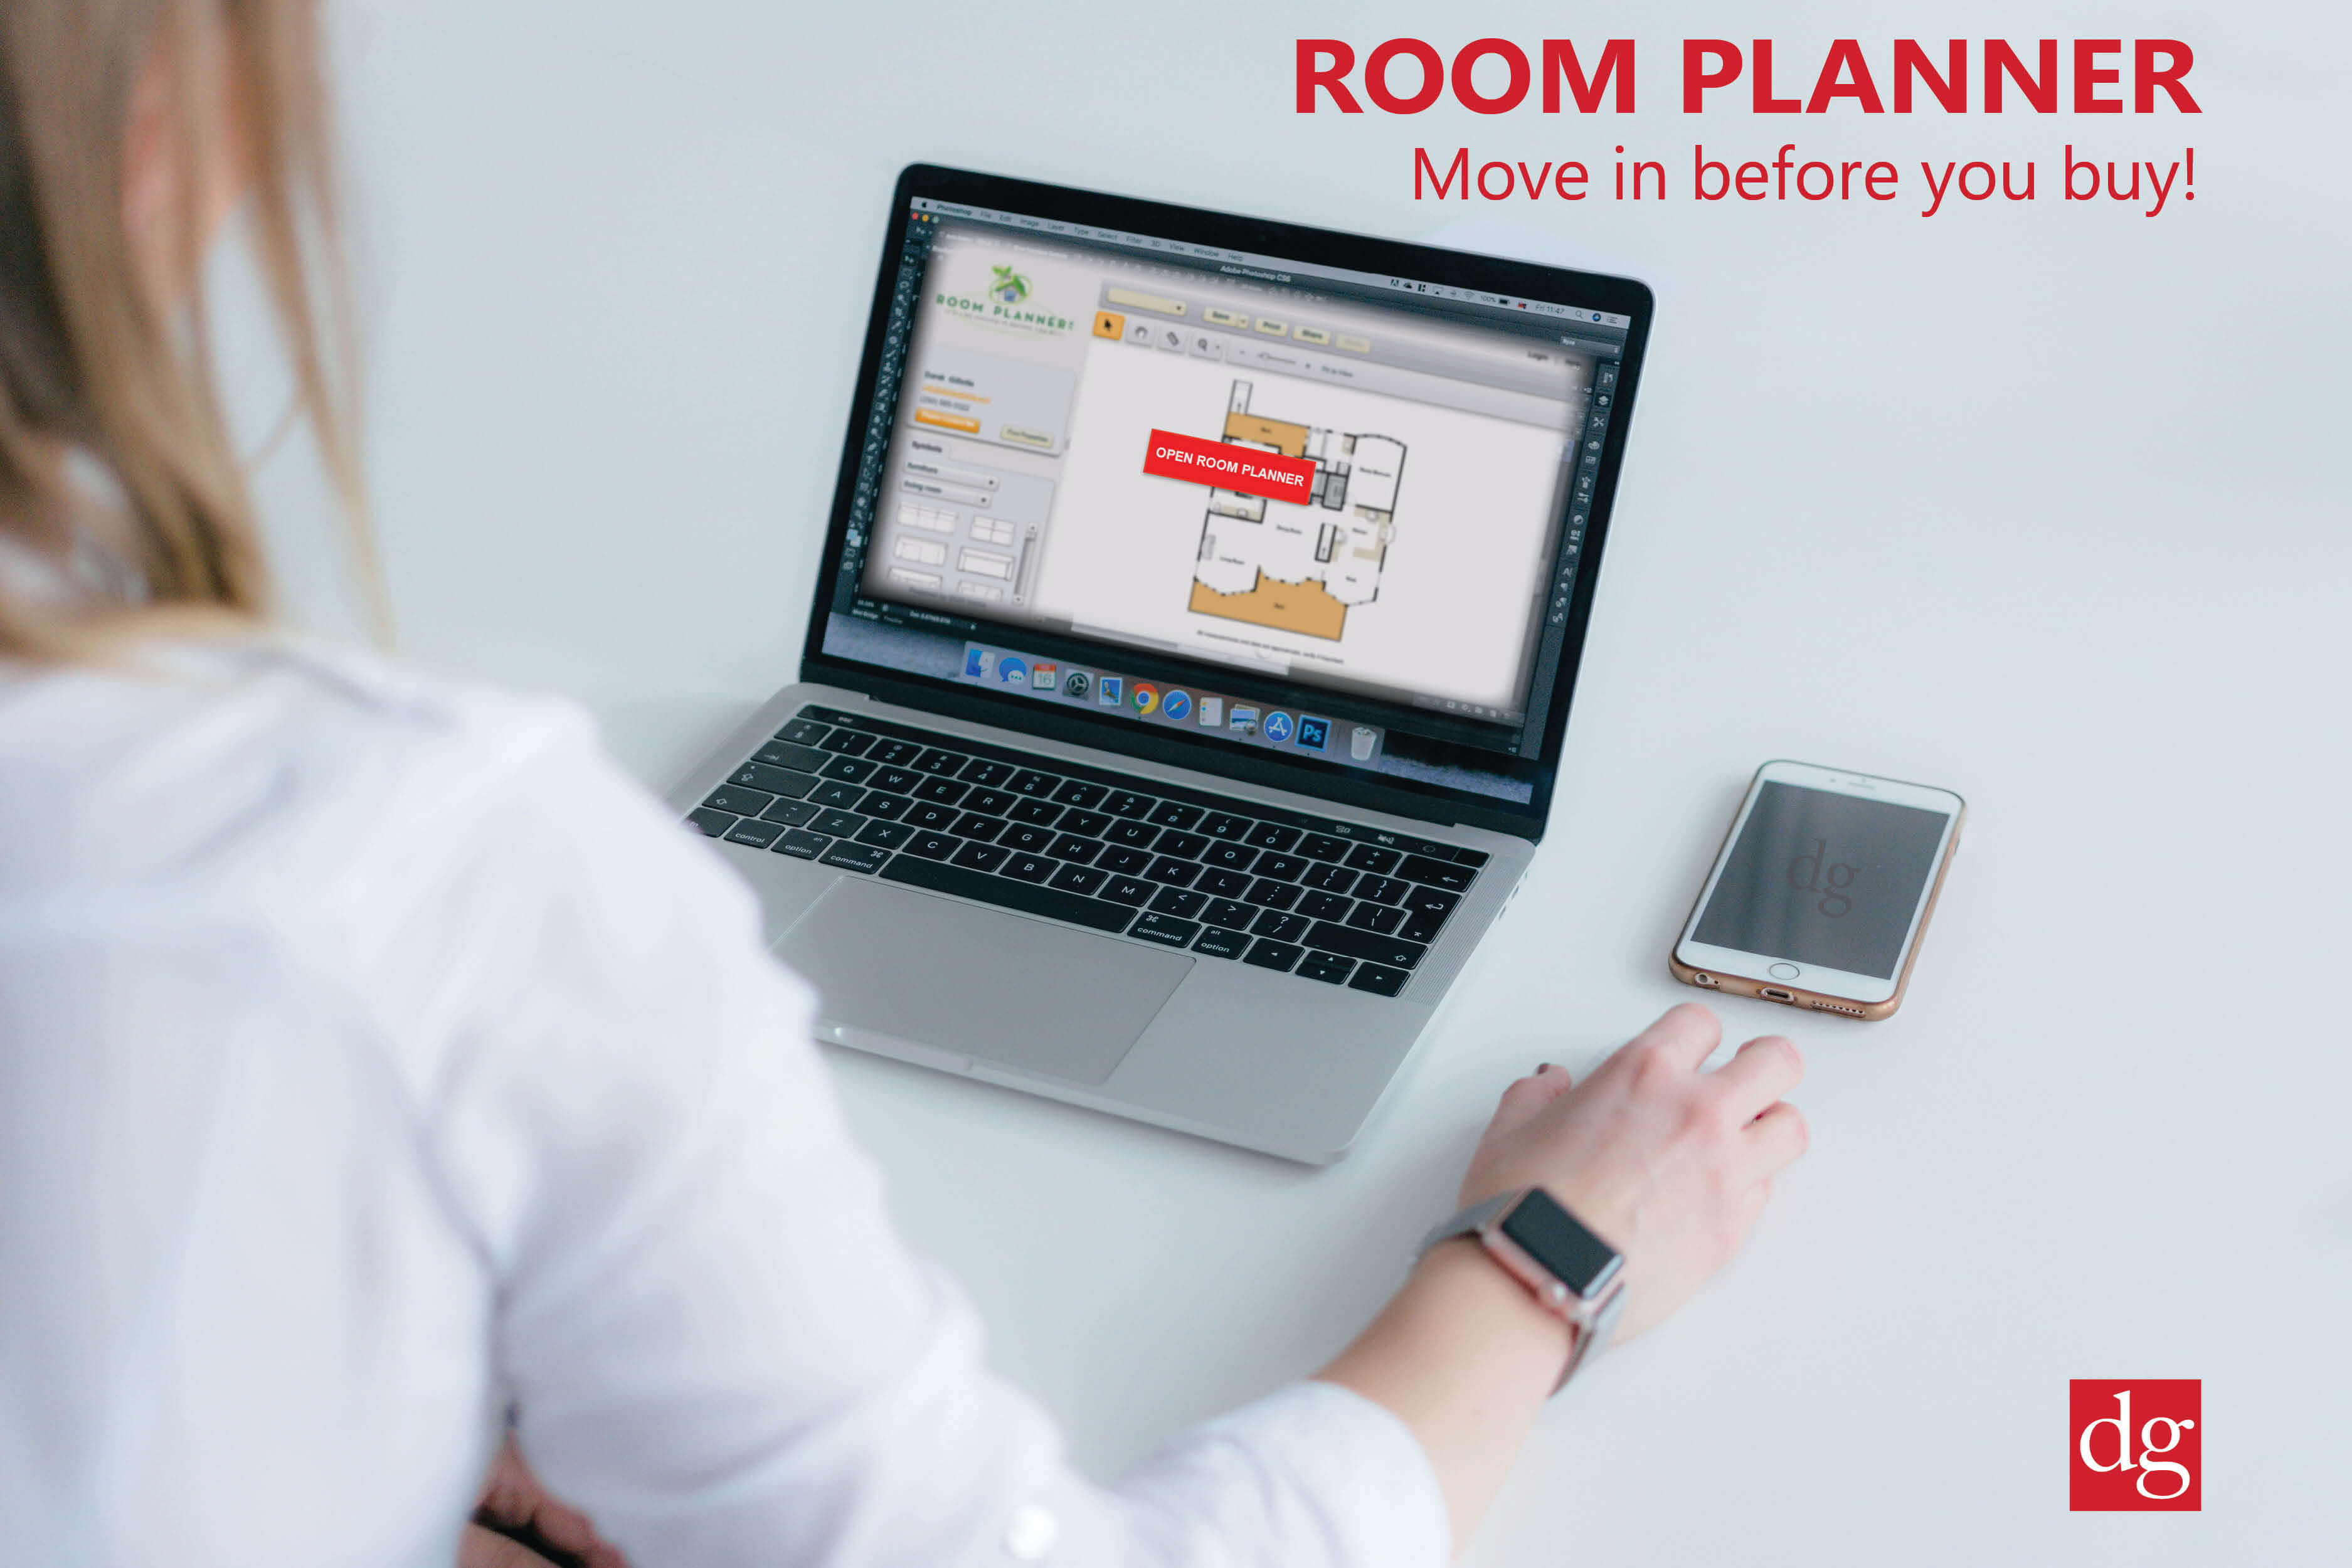 Room Planner - Move In Before You Buy